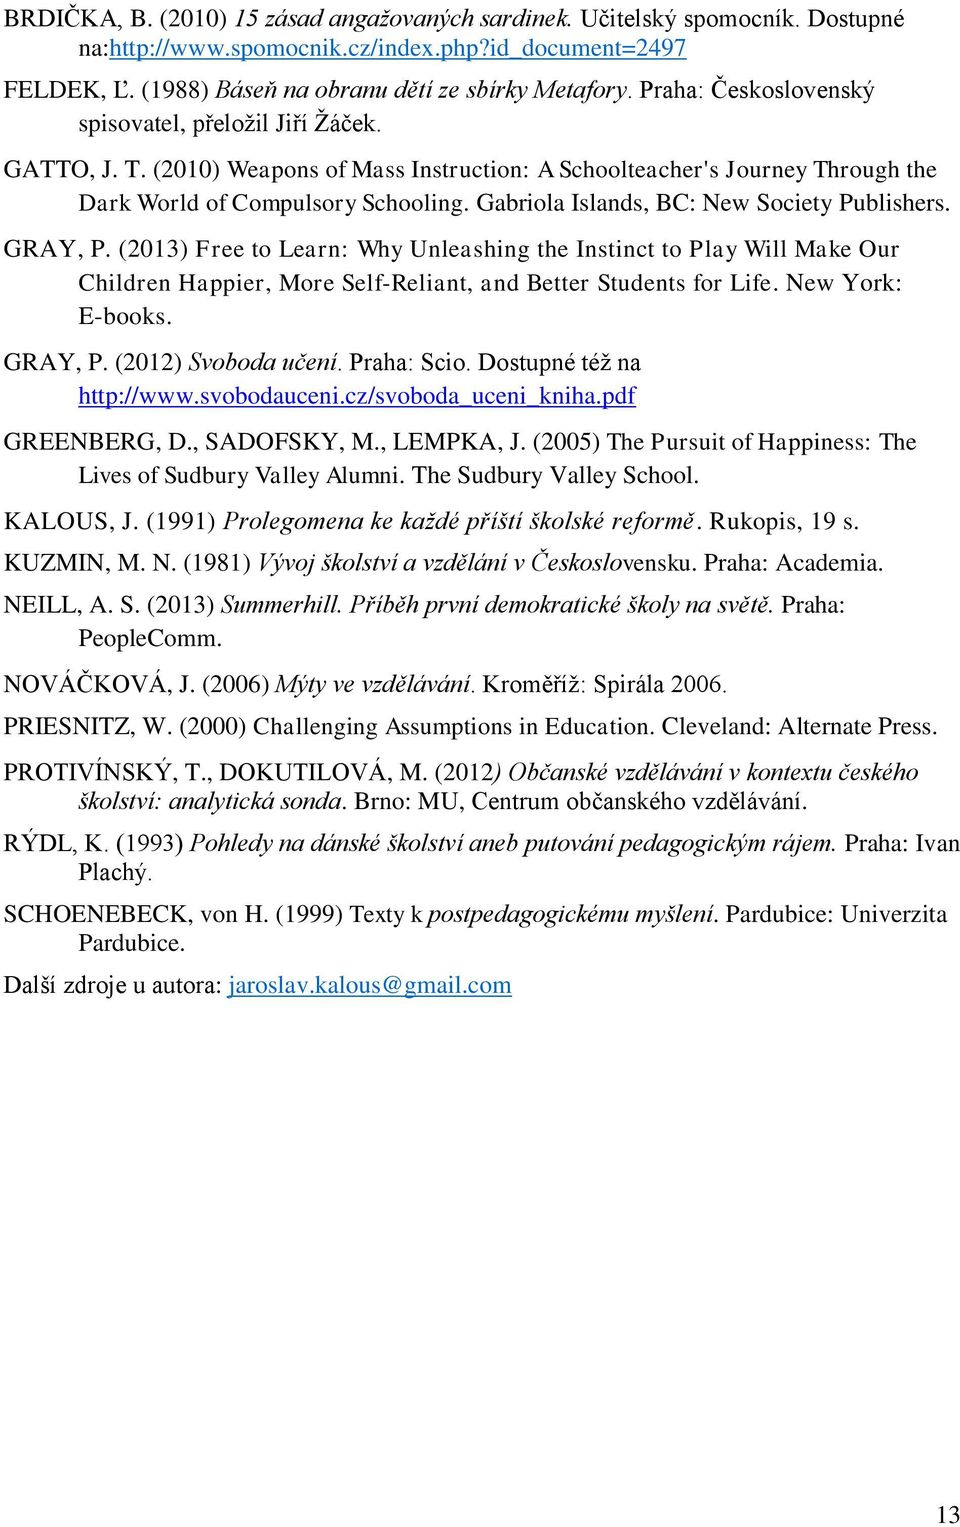 Gabriola Islands, BC: New Society Publishers. GRAY, P. (2013) Free to Learn: Why Unleashing the Instinct to Play Will Make Our Children Happier, More Self-Reliant, and Better Students for Life.